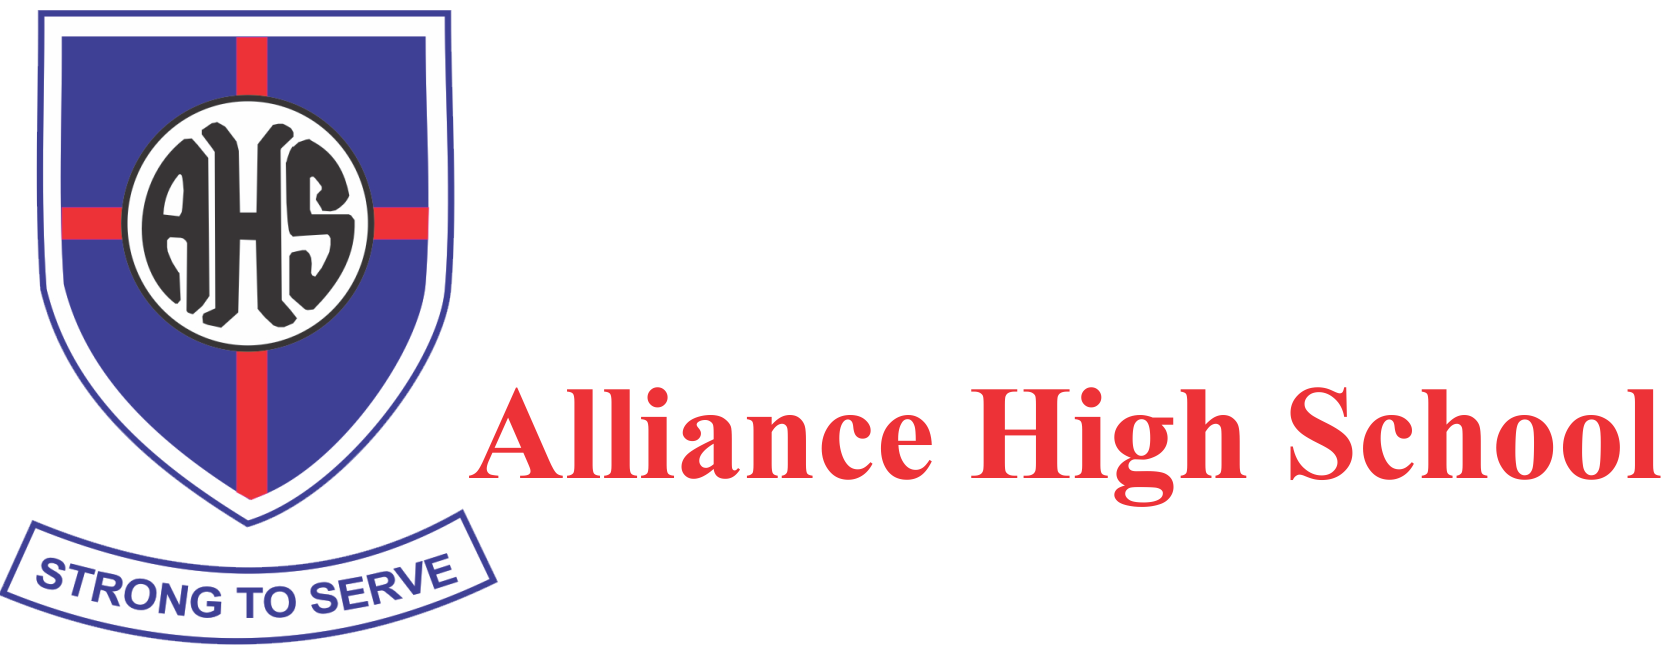 Alliance High School